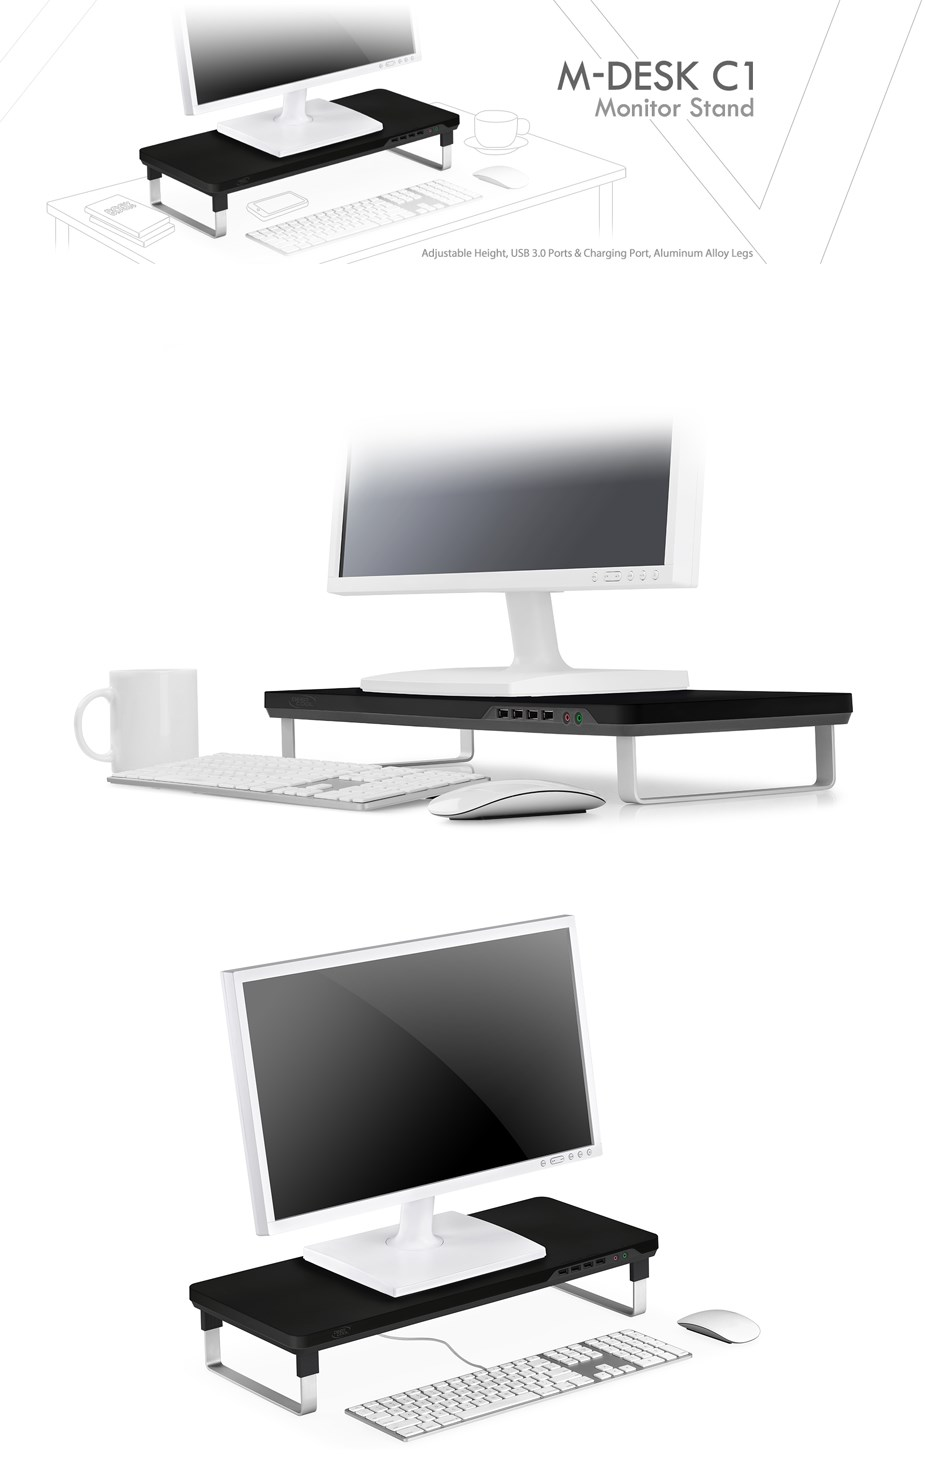 Deepcool M-DESK C1 Height Adjustable Monitor Stand with USB Ports - Overview 1